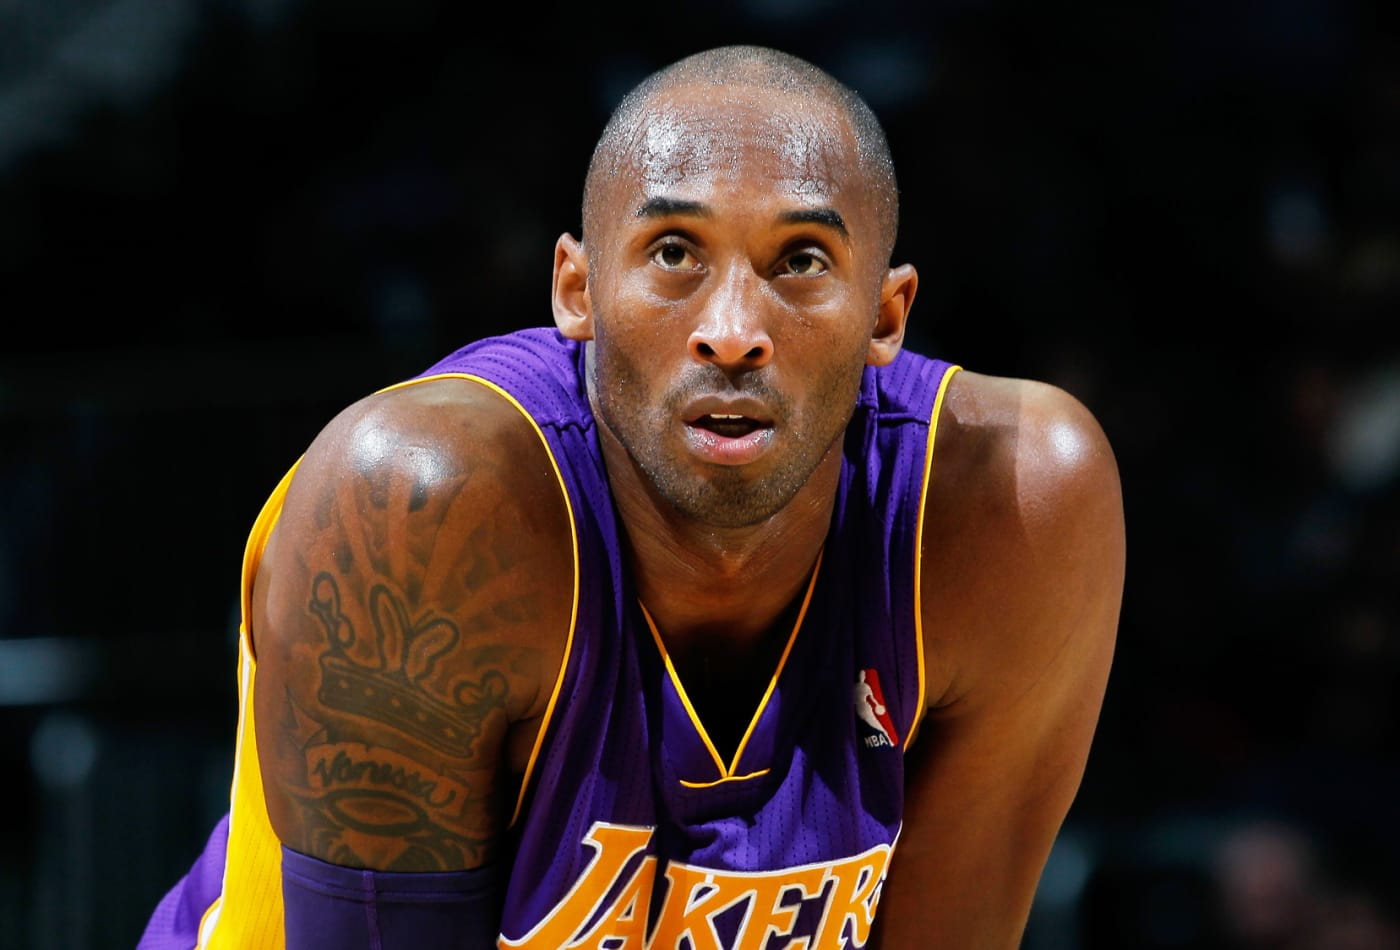 Former NBA Star Kobe Bryant died at 41, many source confirmed...